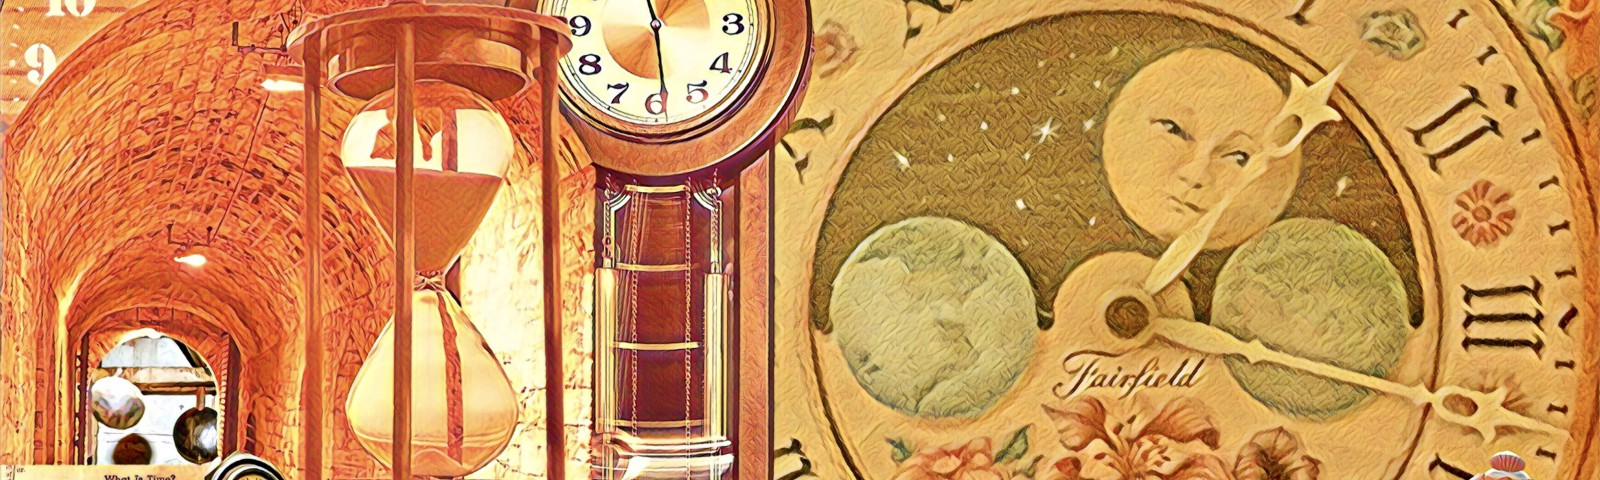 Images of assorted clocks, an hourglass, and a poem about time